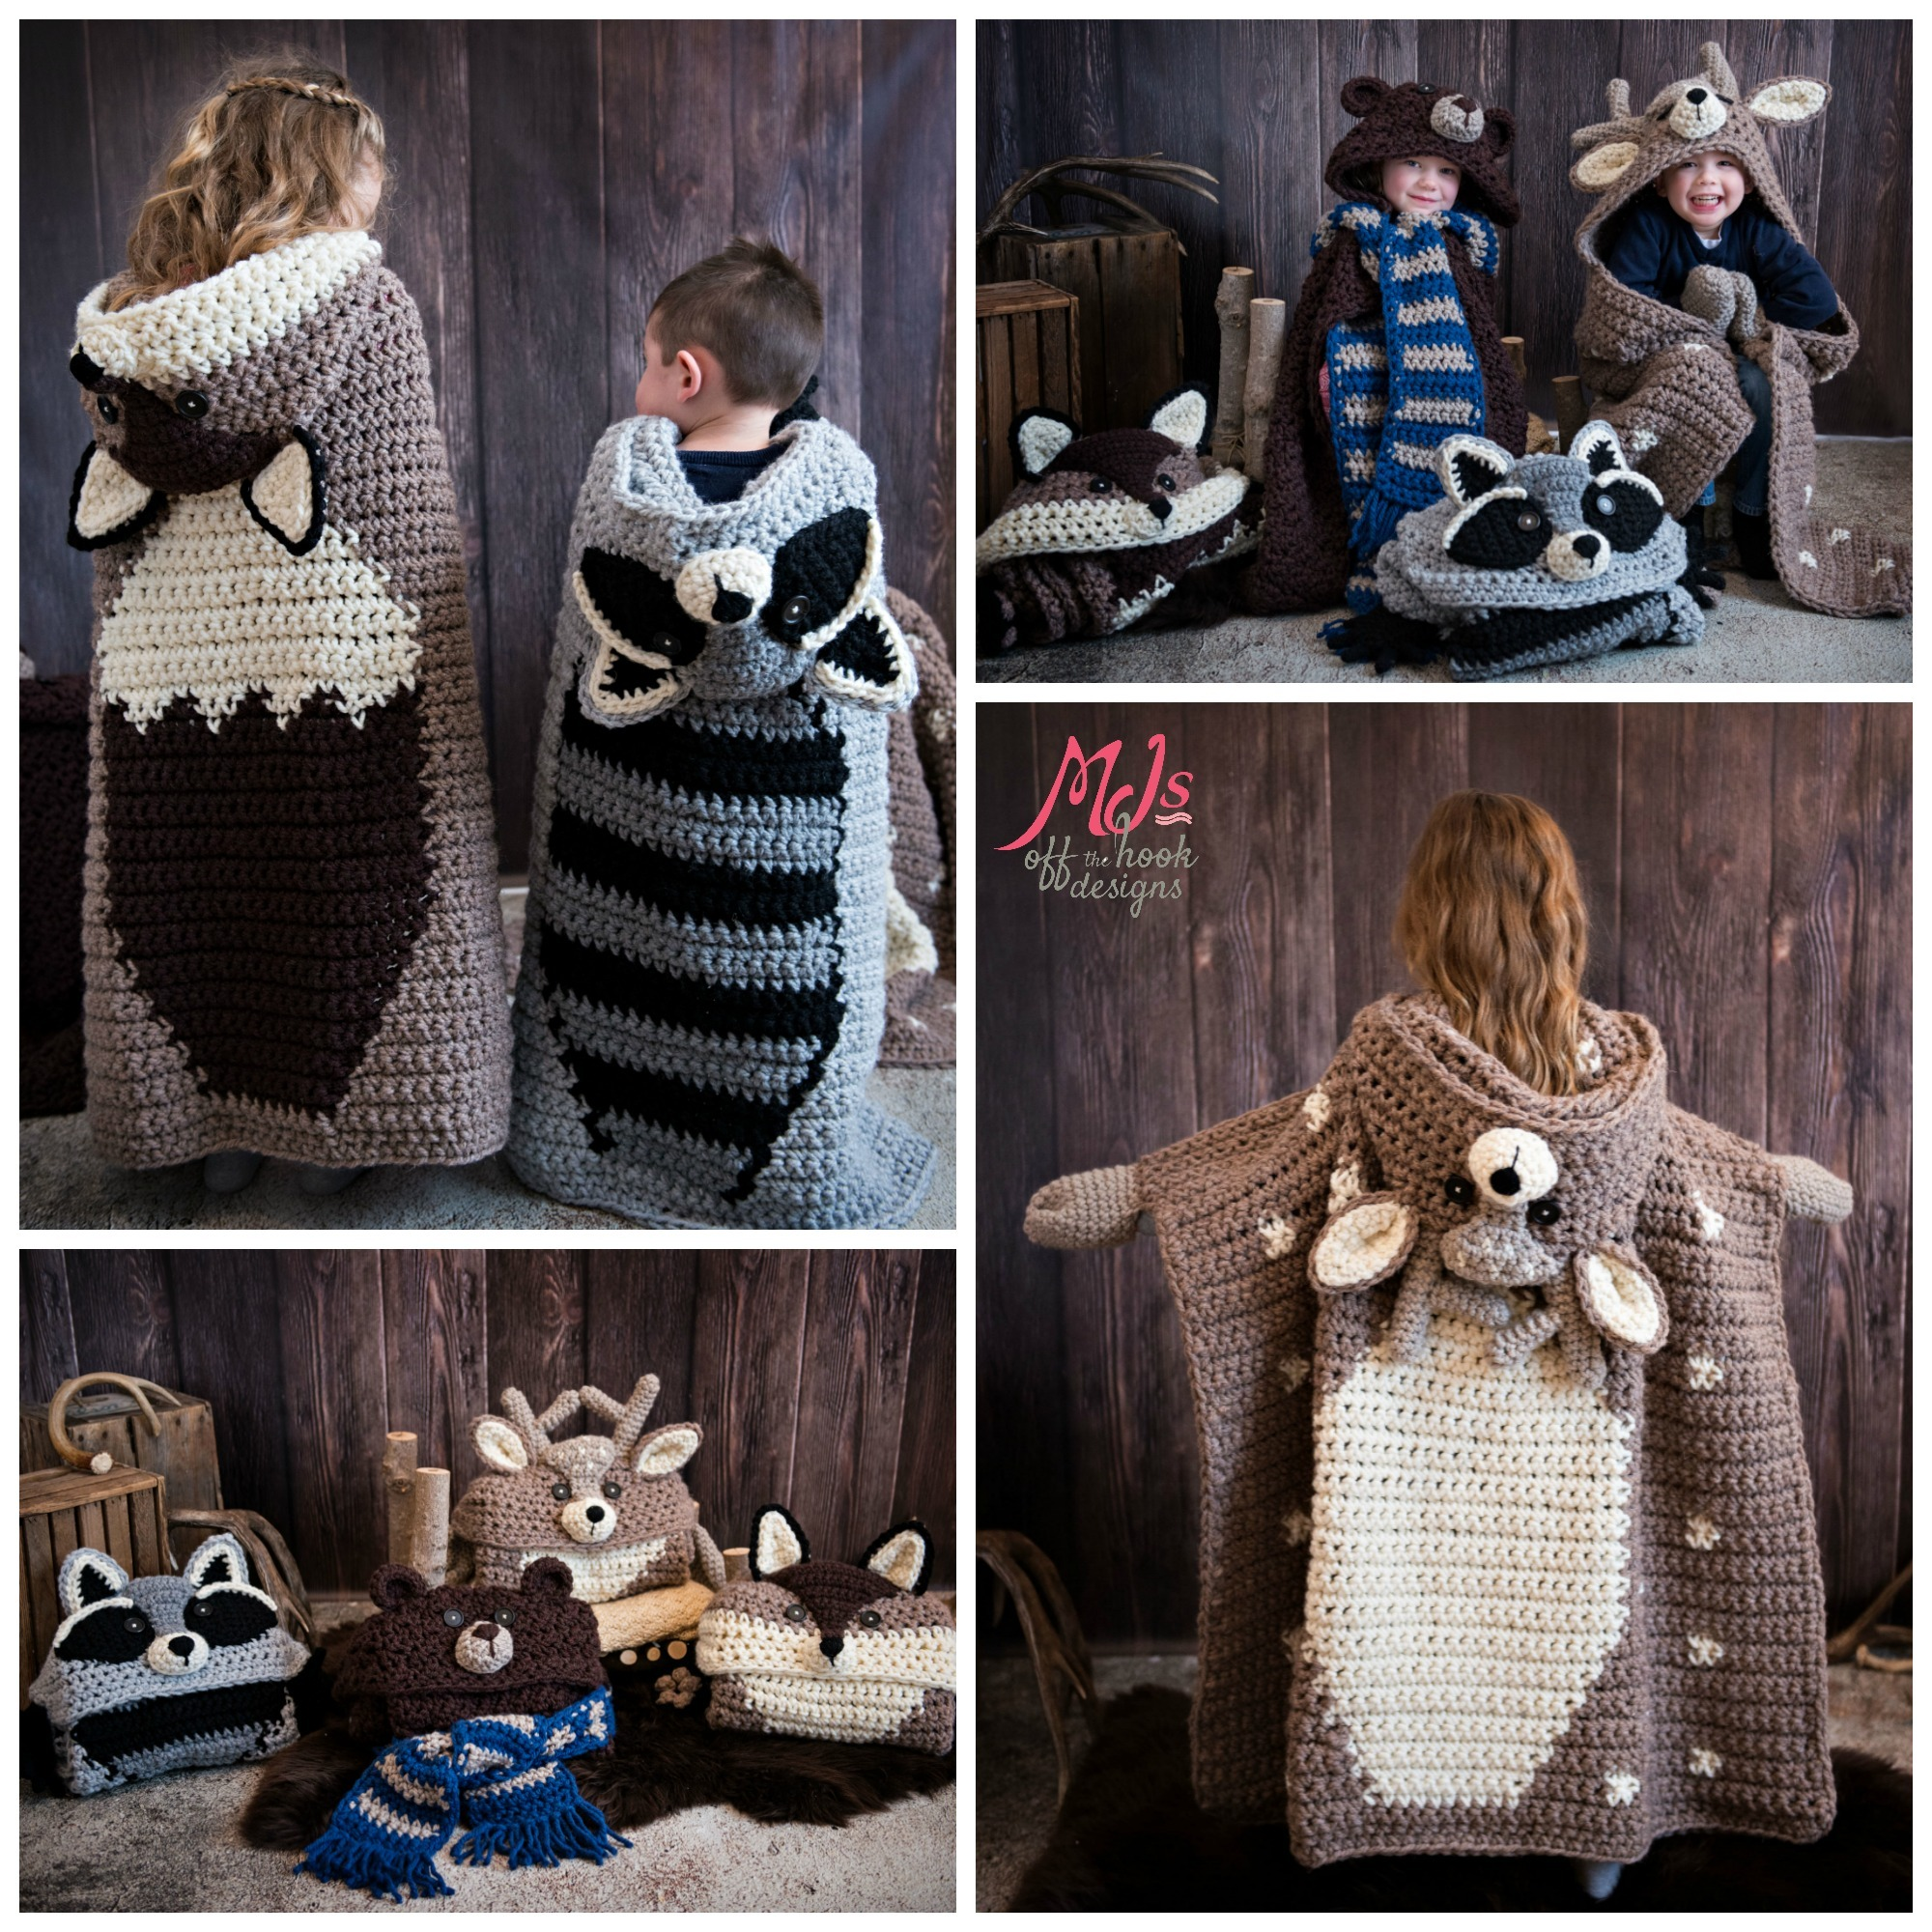 Hooded Woodland Blanket Collection Mjs Off The Hook Designs